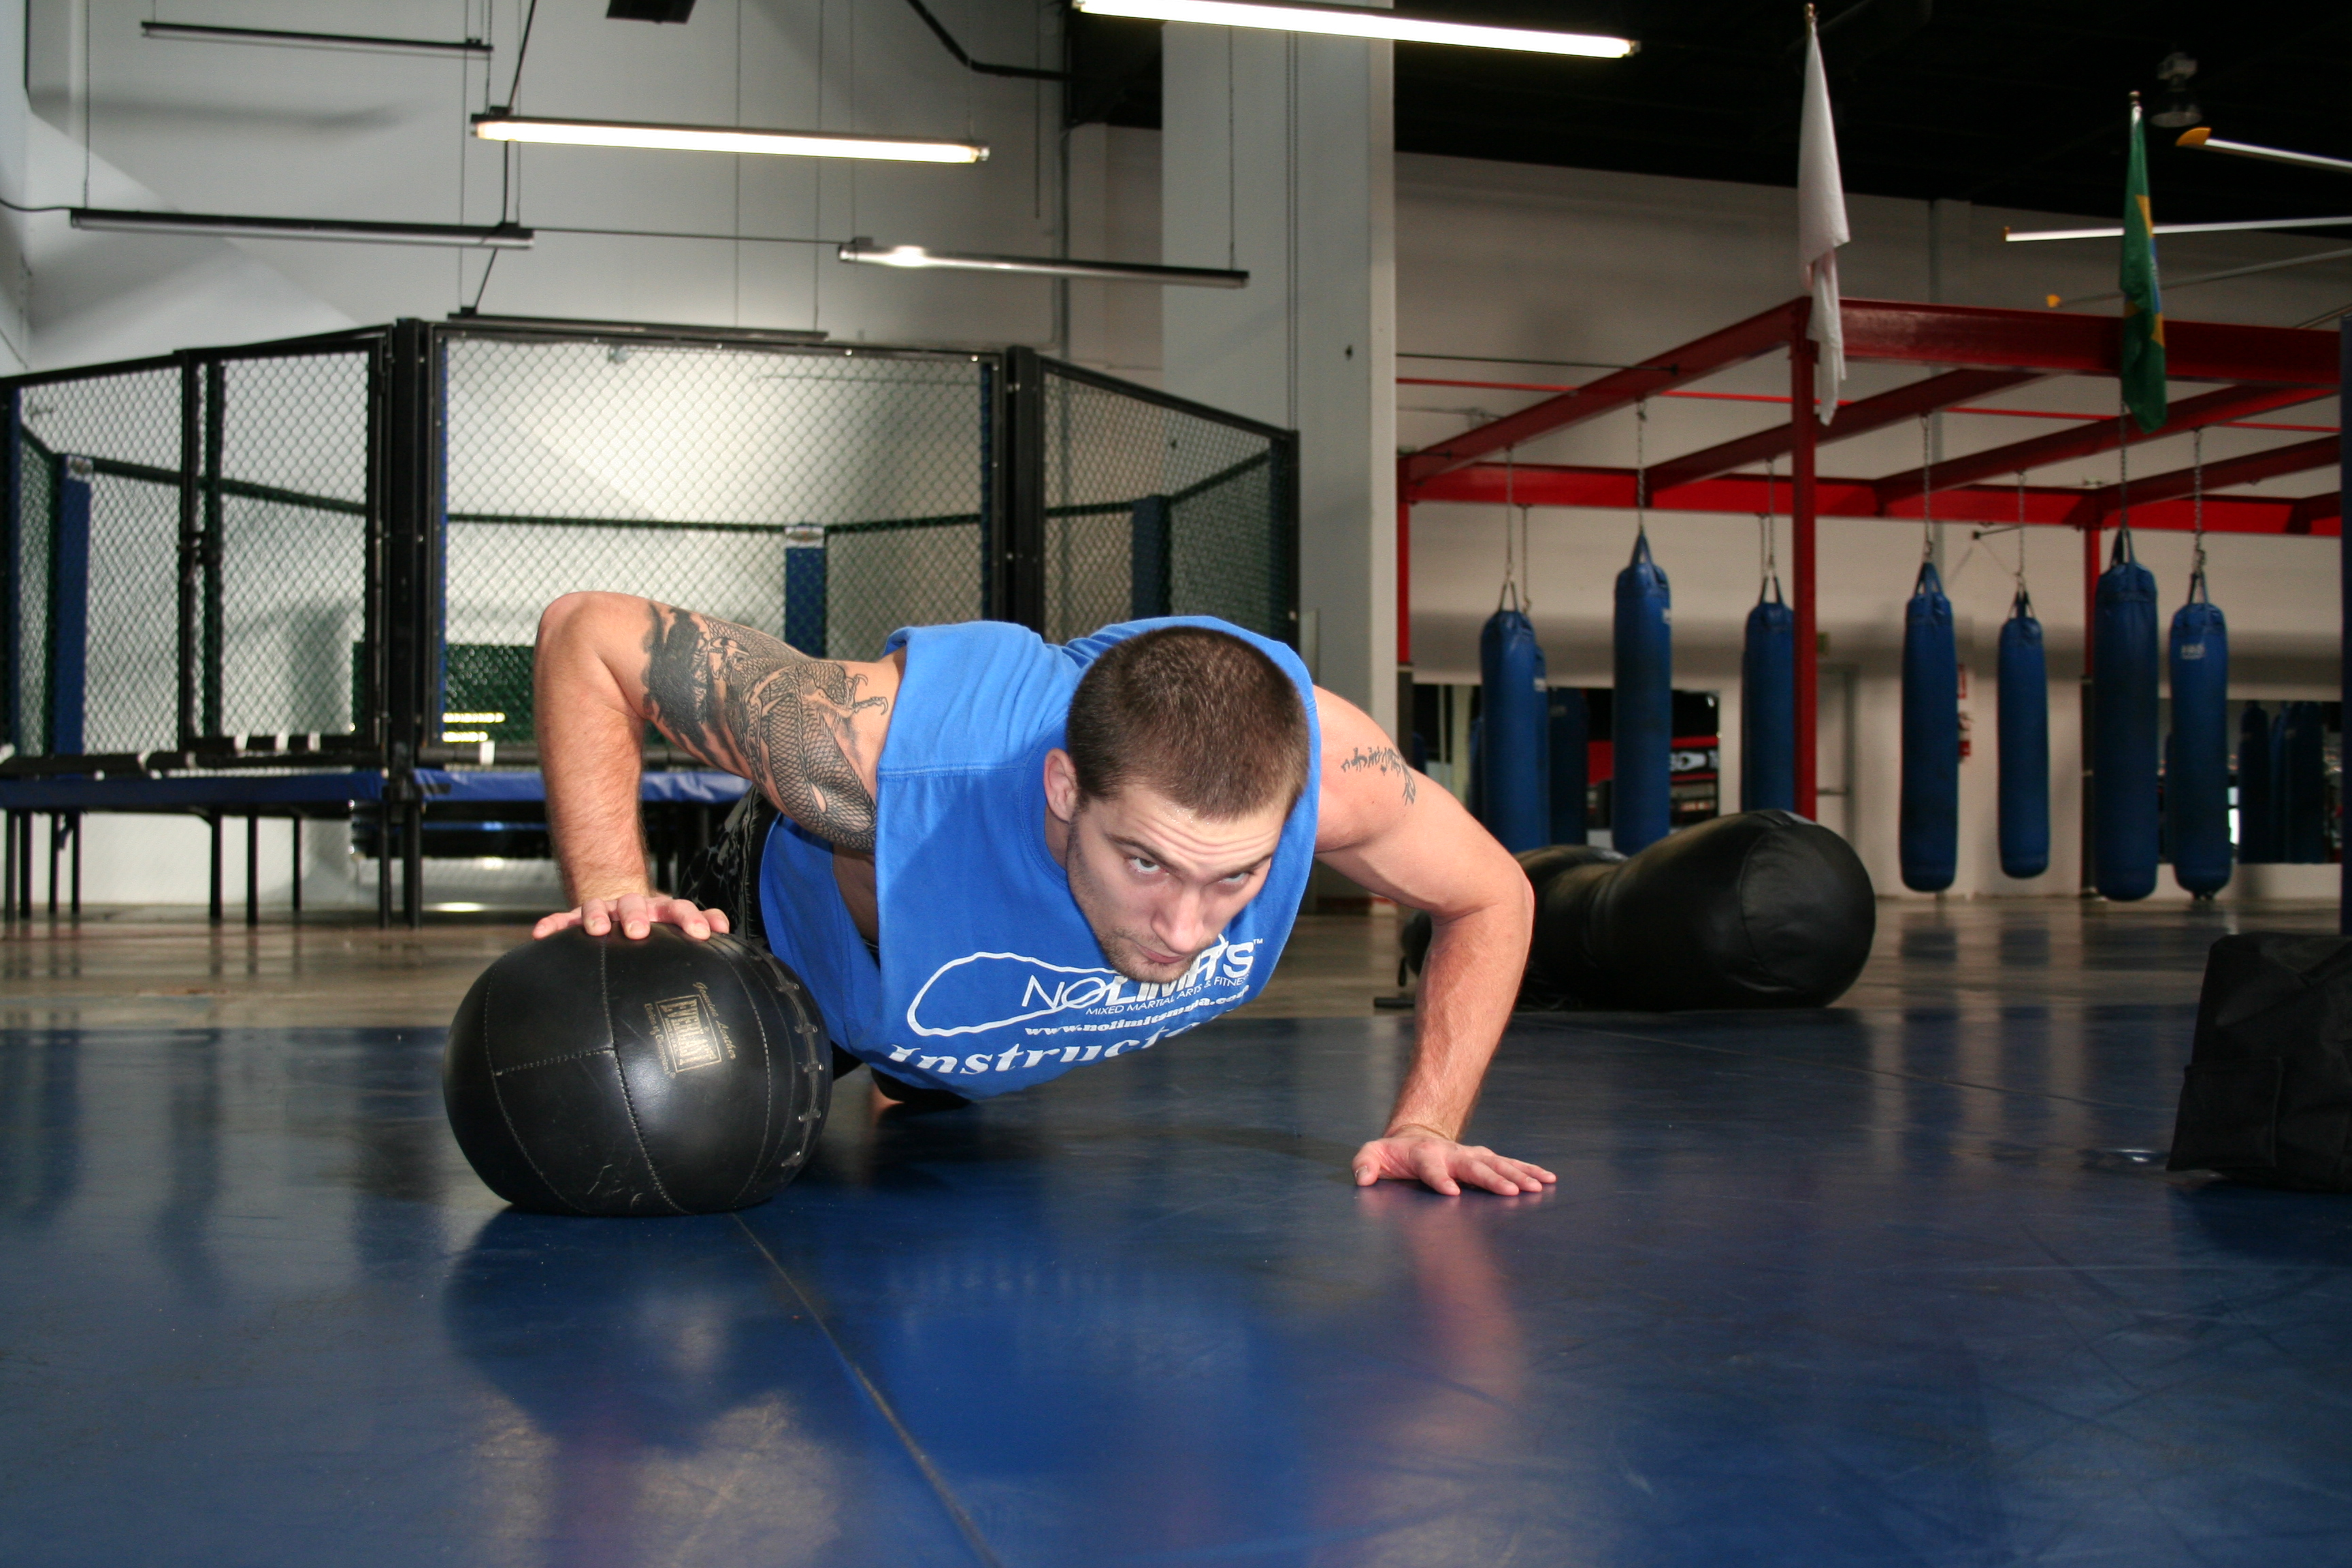 NJ MMA | Fight and Fitness MMA | New Jersey MMA Strength and ...